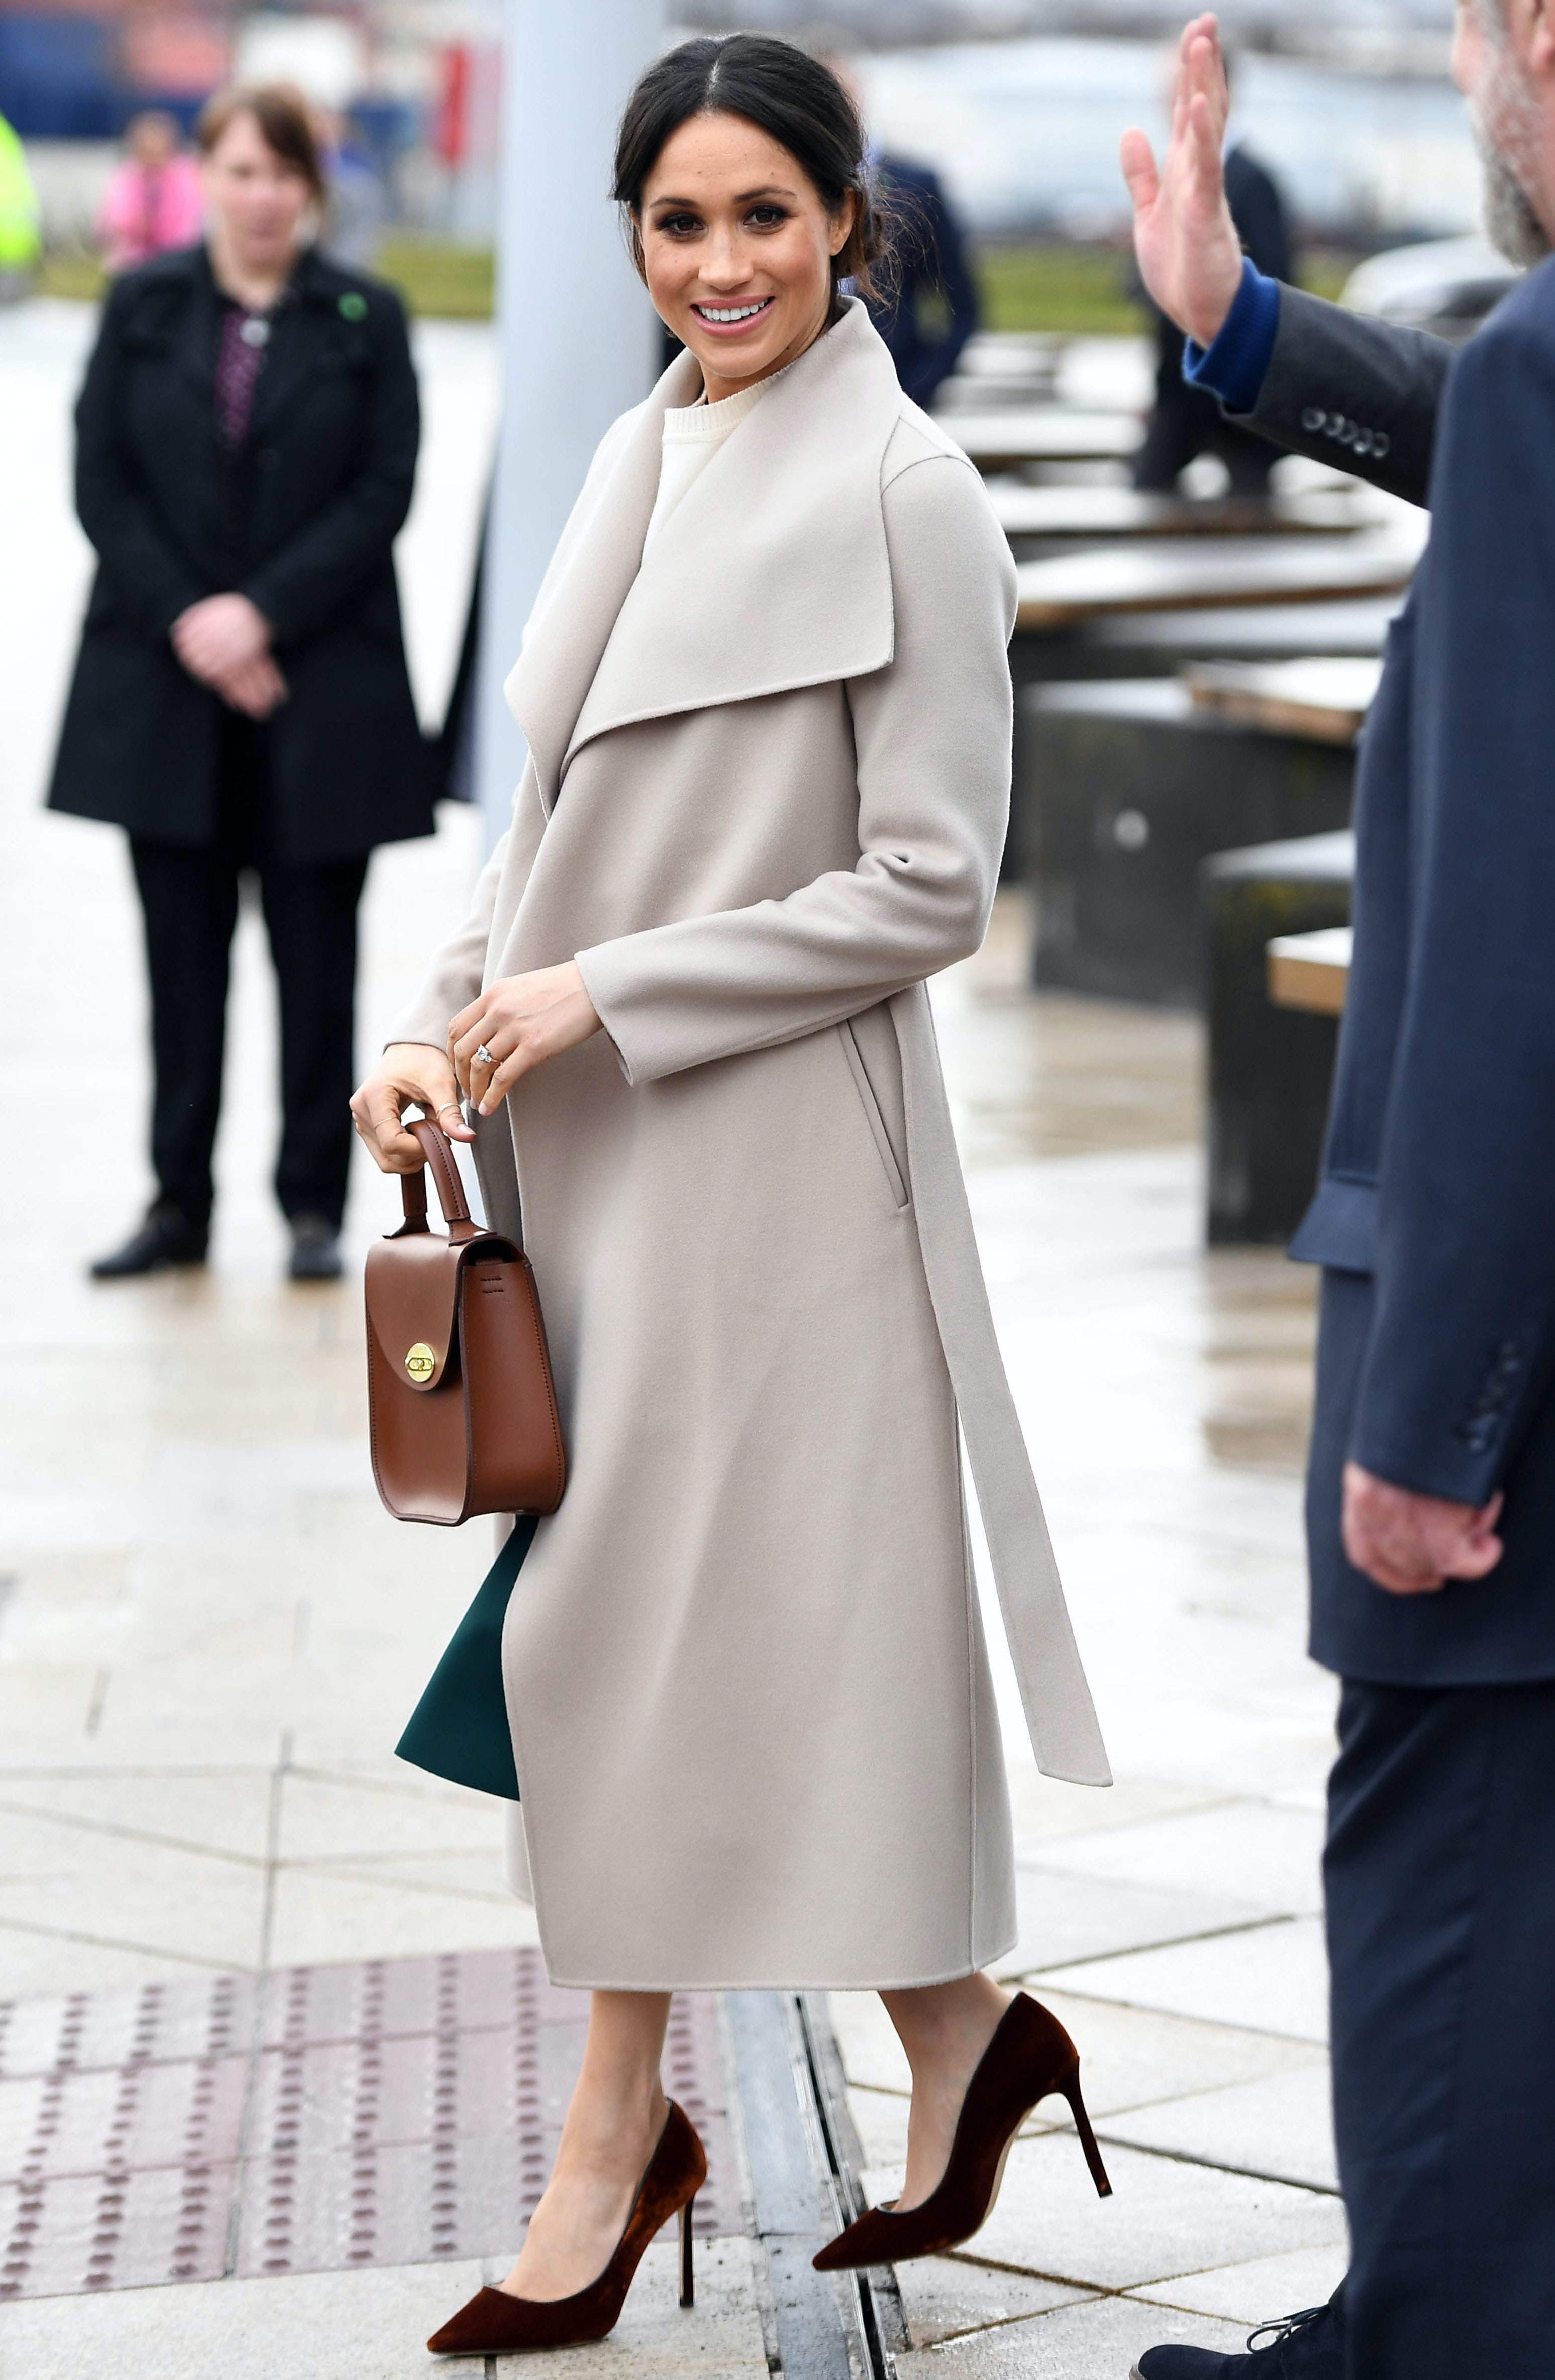 How to Dress Meghan Markle (Hint: You Probably Can't)